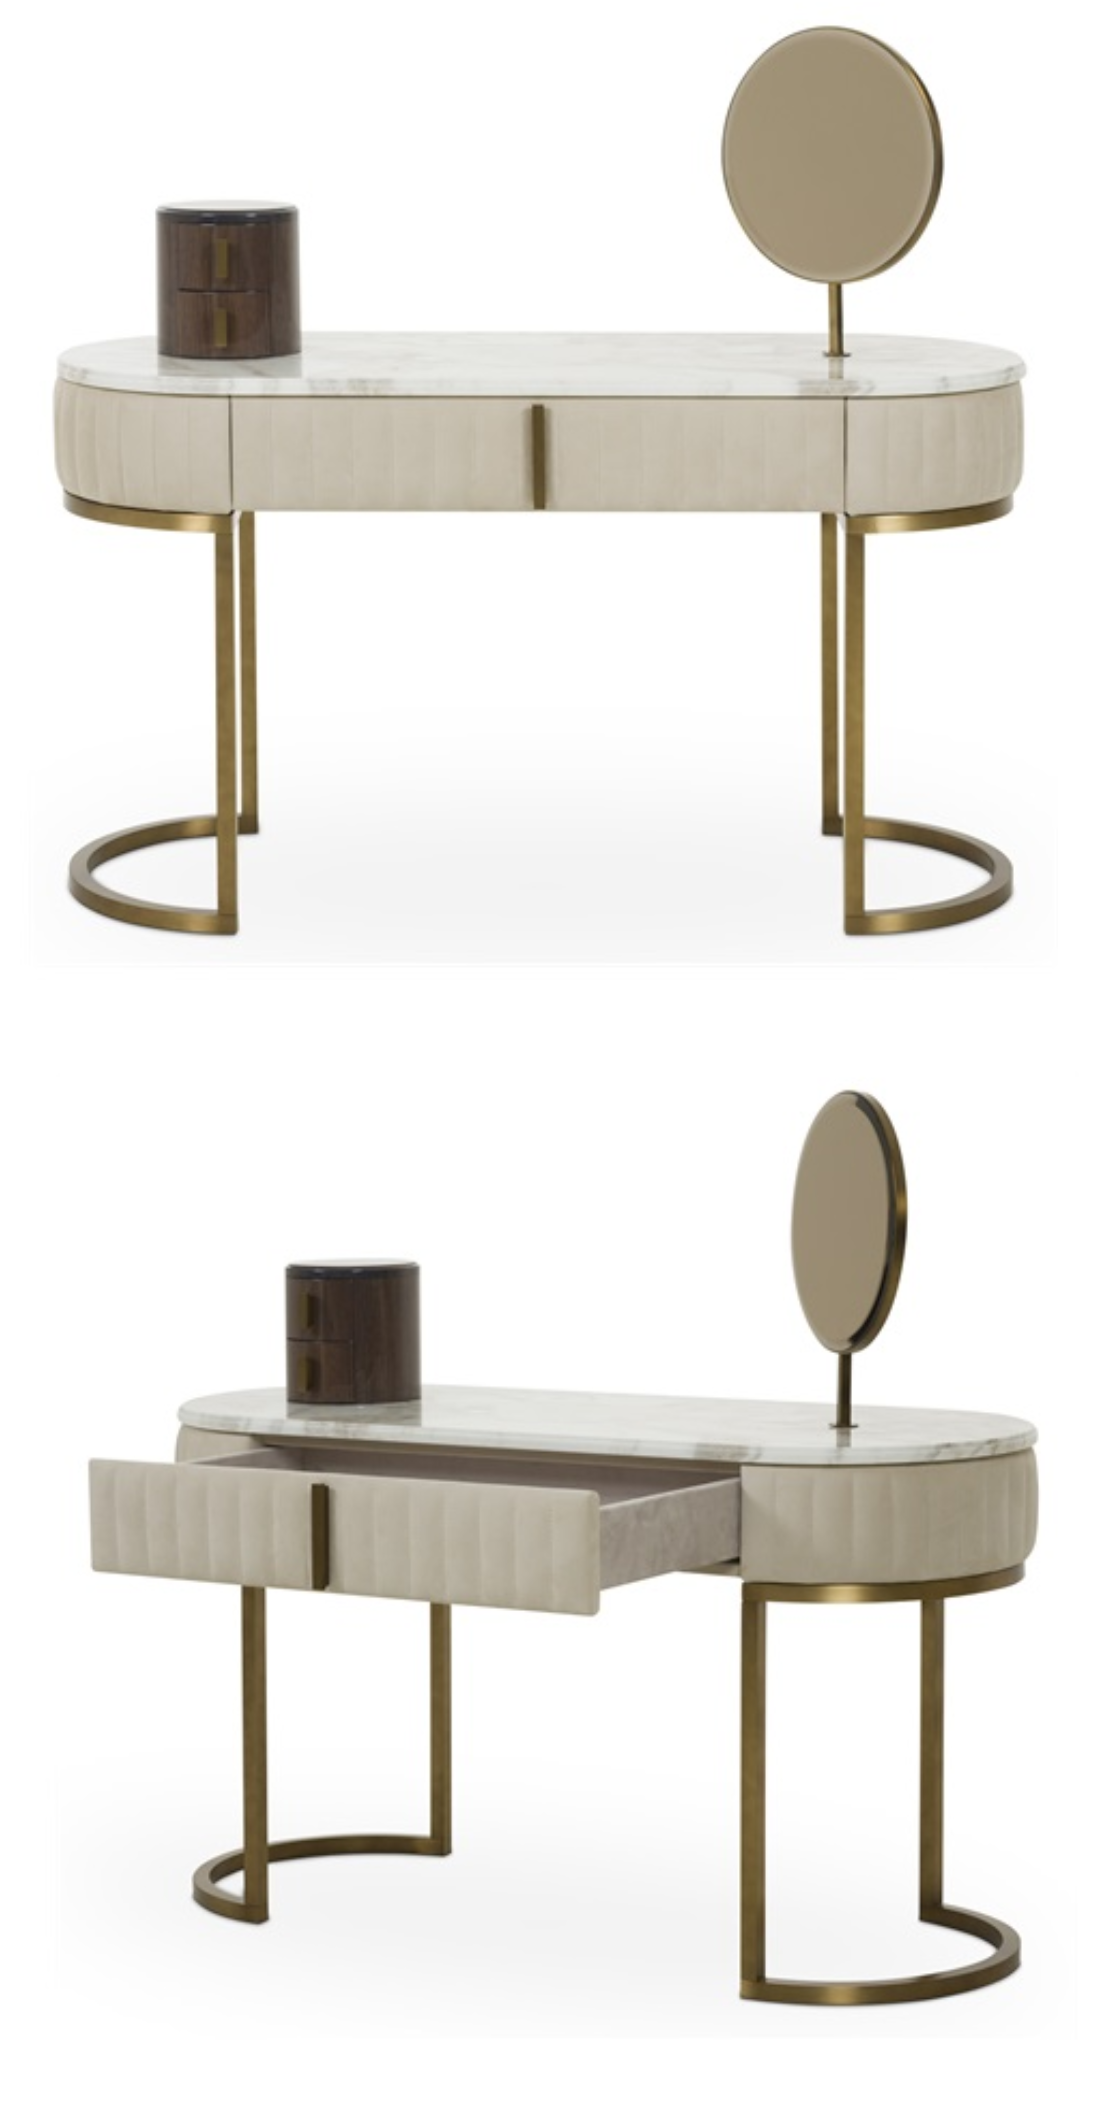 Dressing Table Chairs And Stools: The Sofa & Chair Company